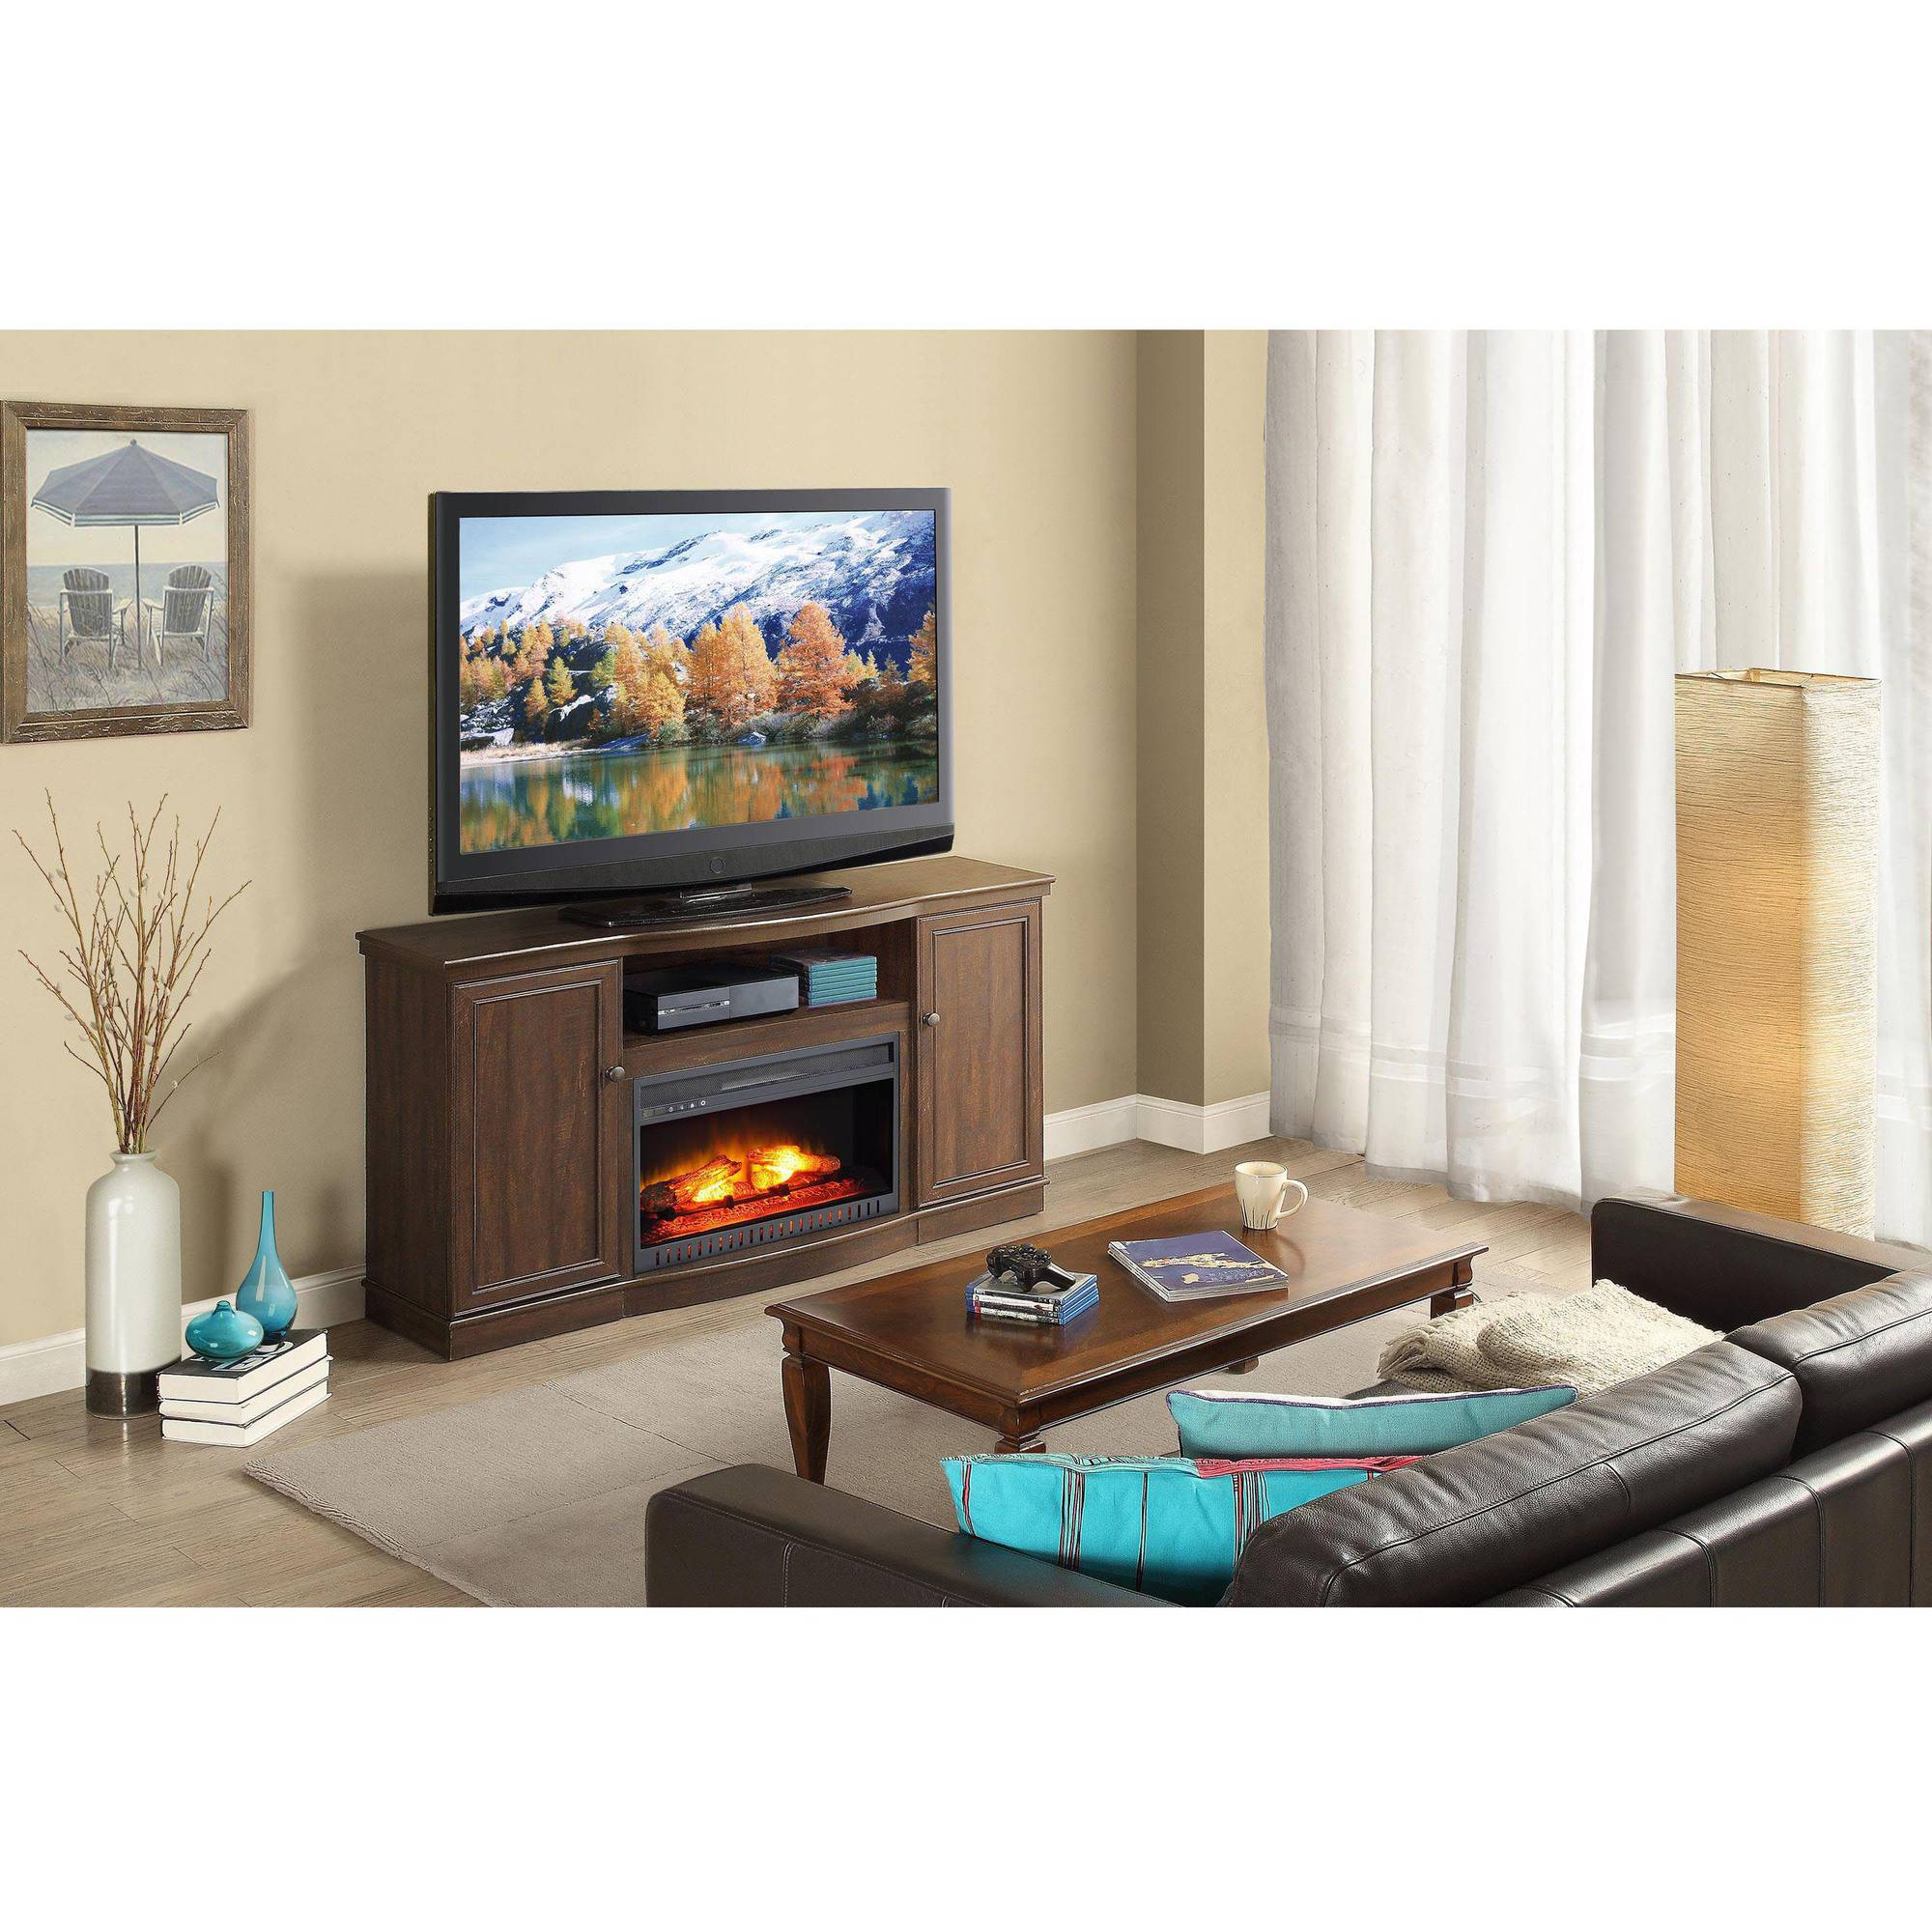 Wood Spaces Target Stand Black Fireplace Tall Wall Inch Mahogany intended for Marvin Rustic Natural 60 Inch Tv Stands (Image 30 of 30)